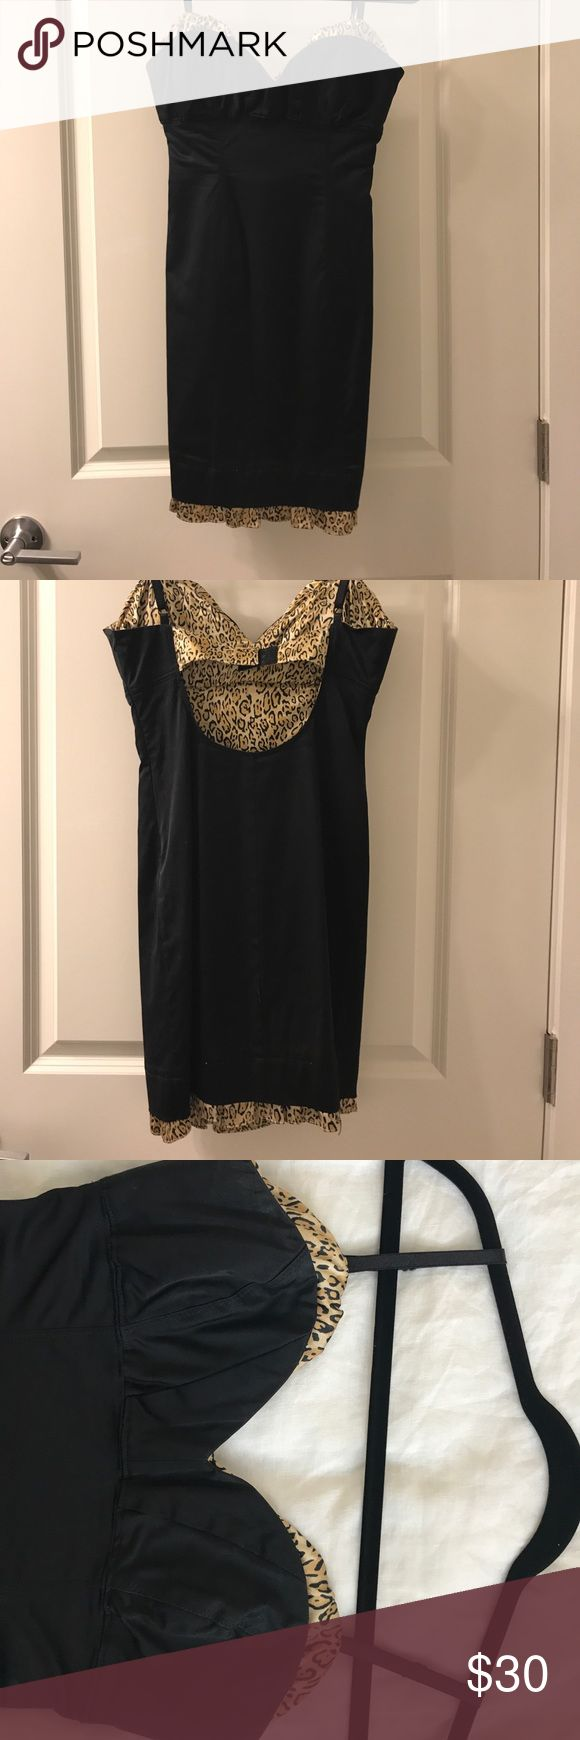 Stretch Guess dress with cheetah print lining Black stretch Guess dress with cheetah print lining Guess Dresses